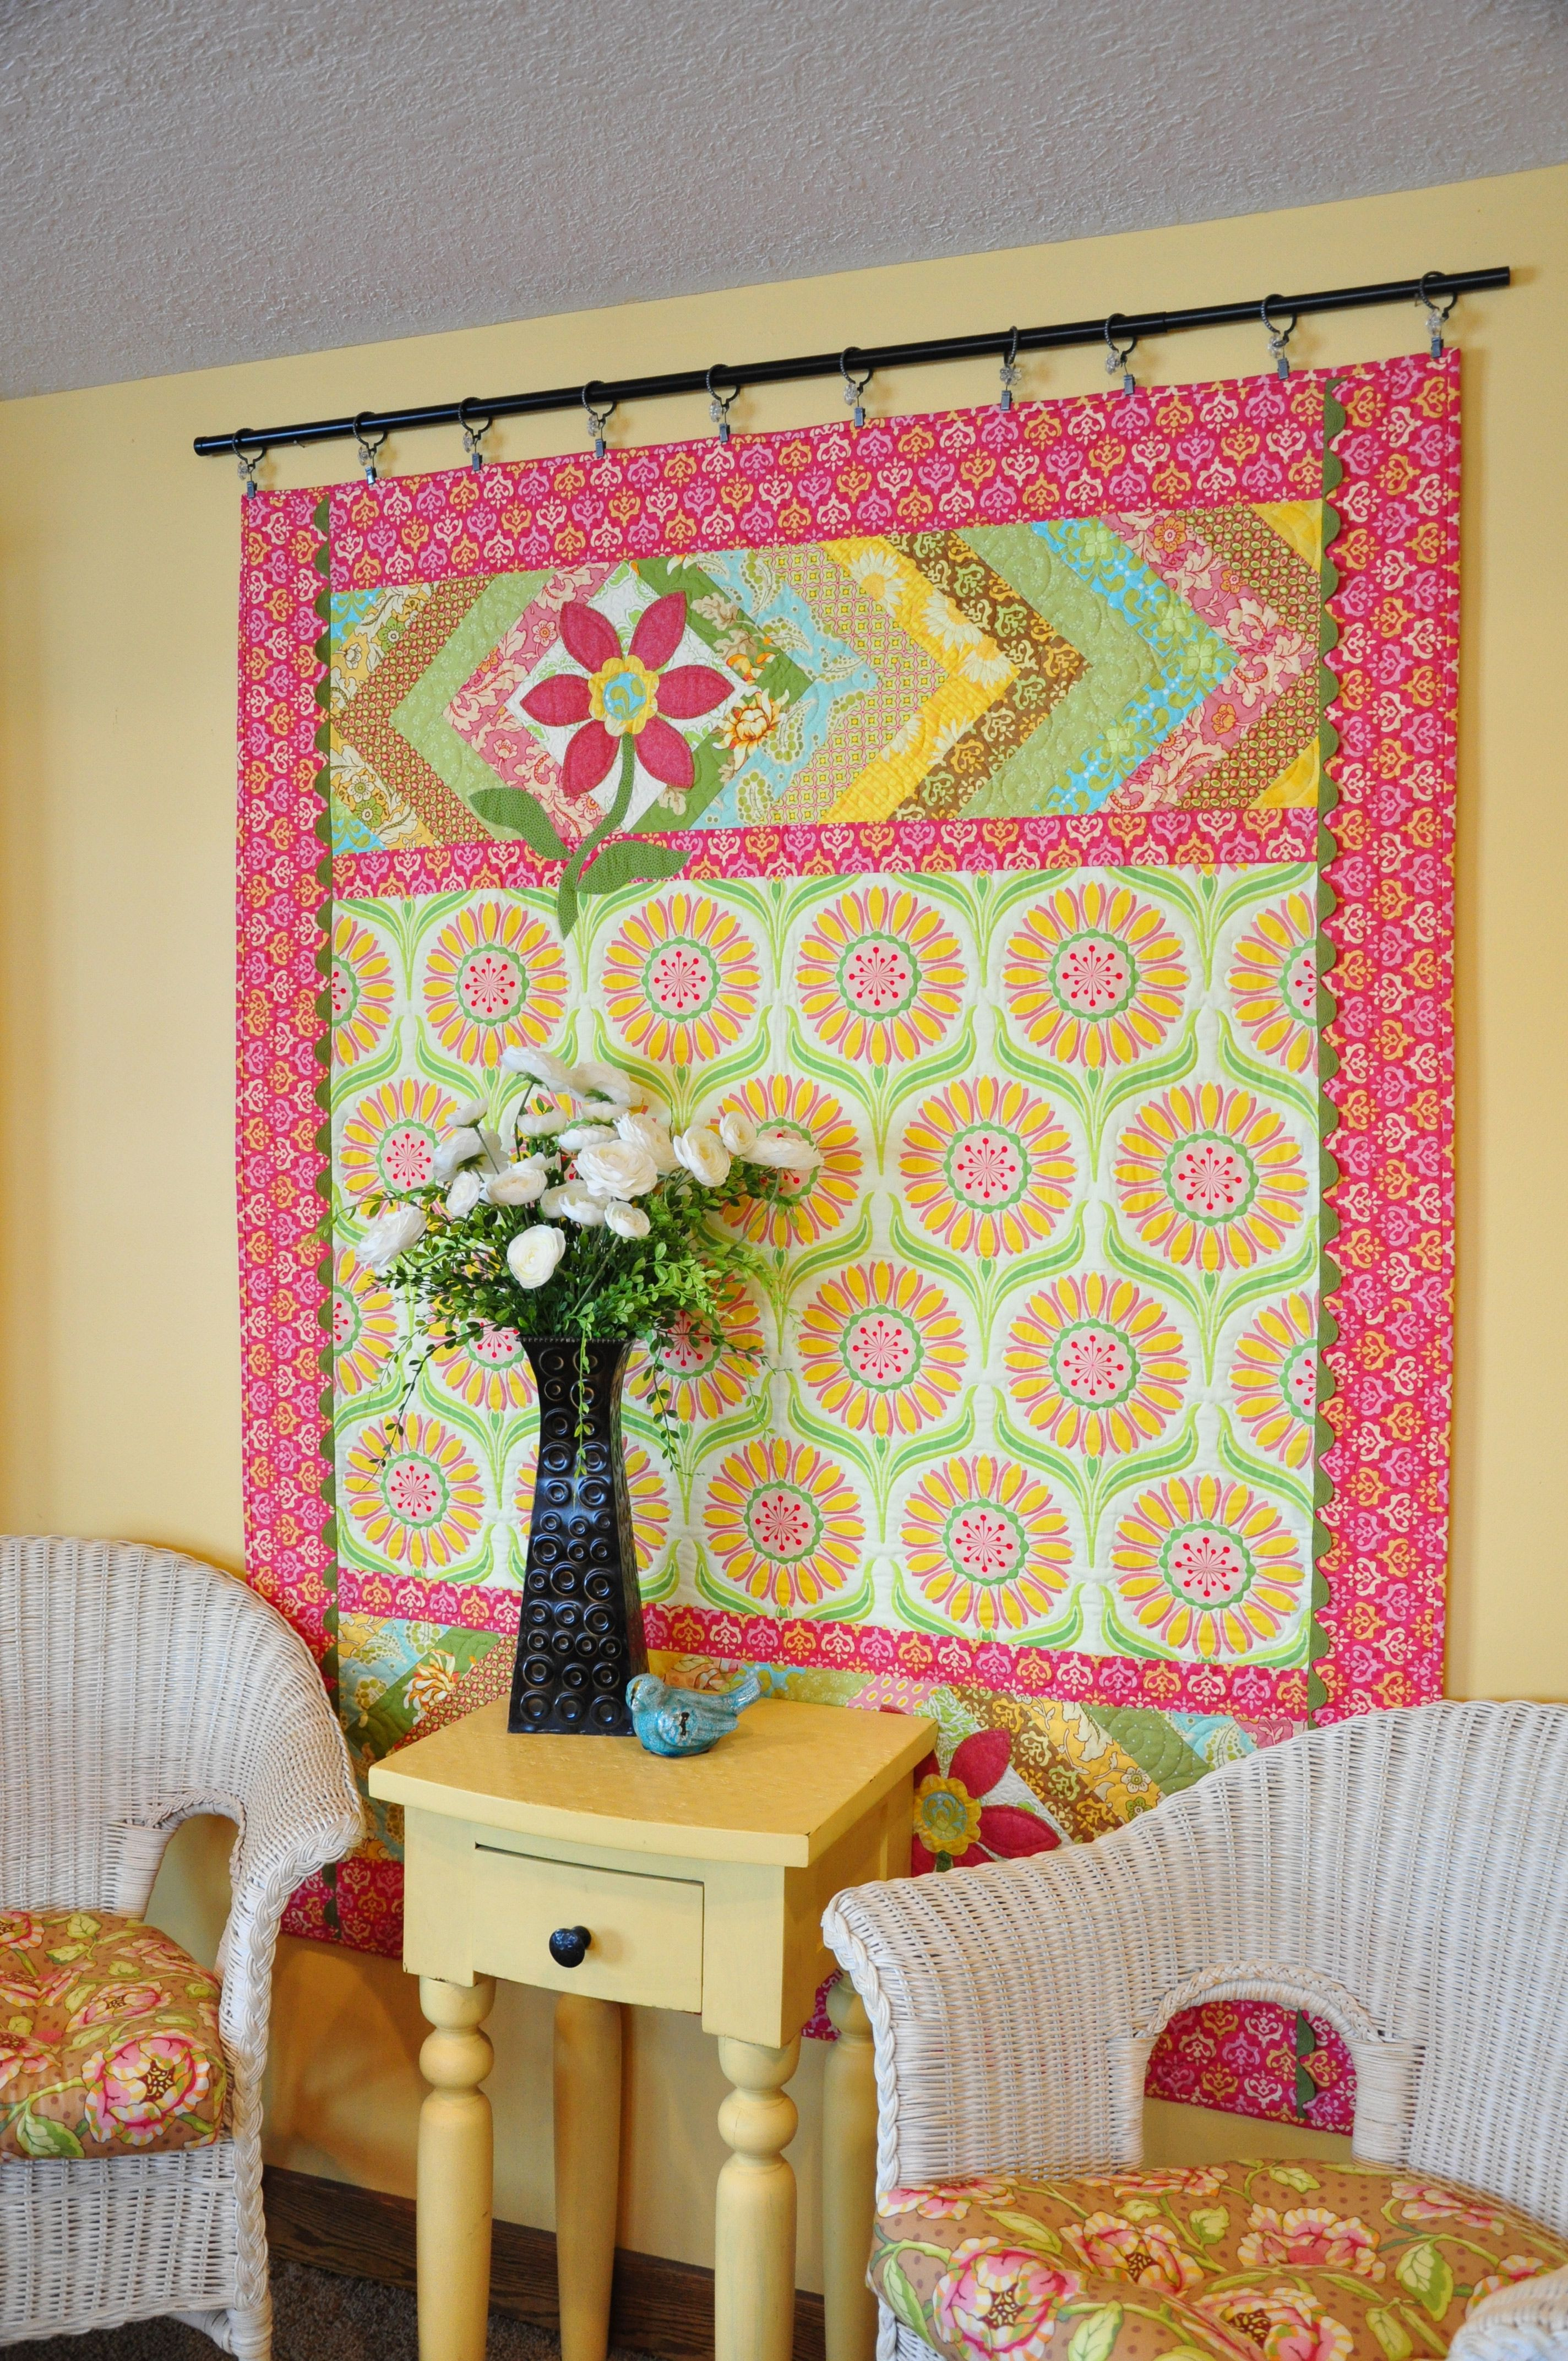 Hanging quilts quilted wall hangings quilts decor